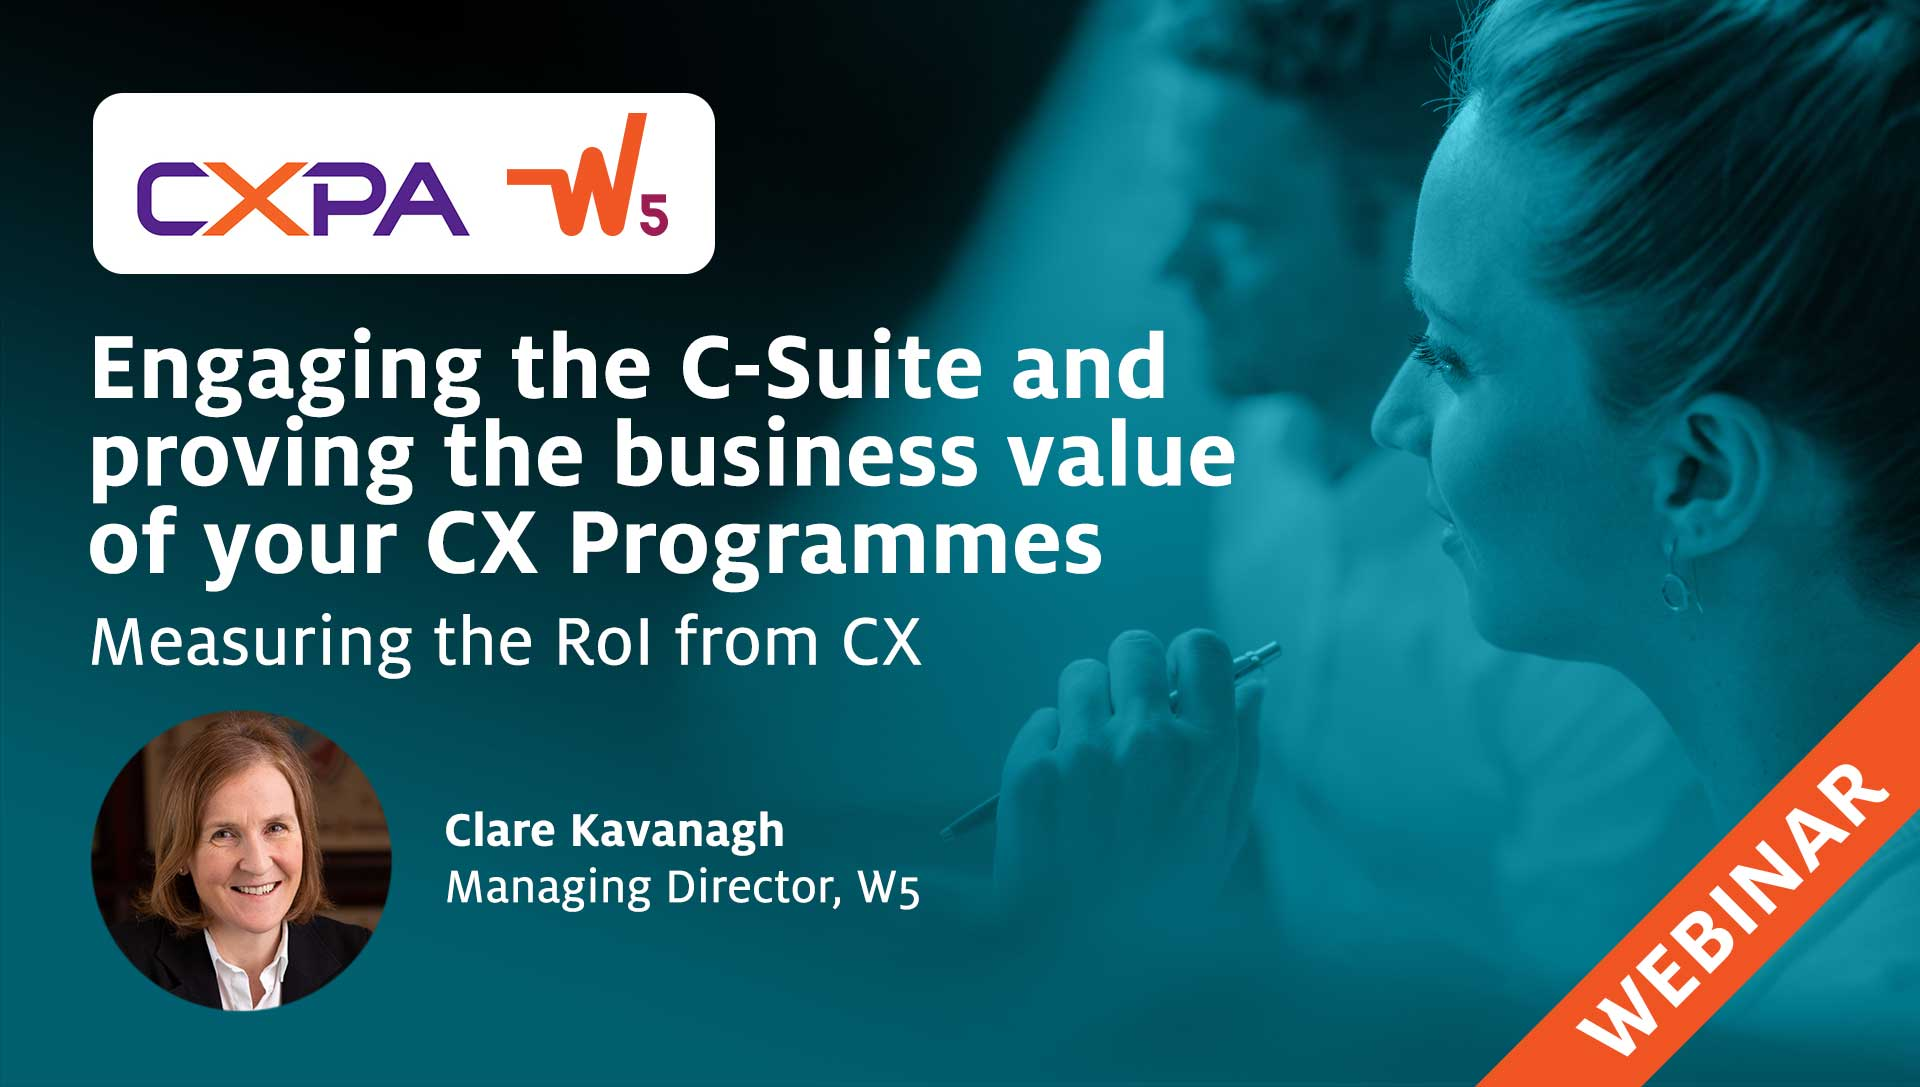 Engaging-C-Suite-Measuring-the-RoI-from-CX-1a